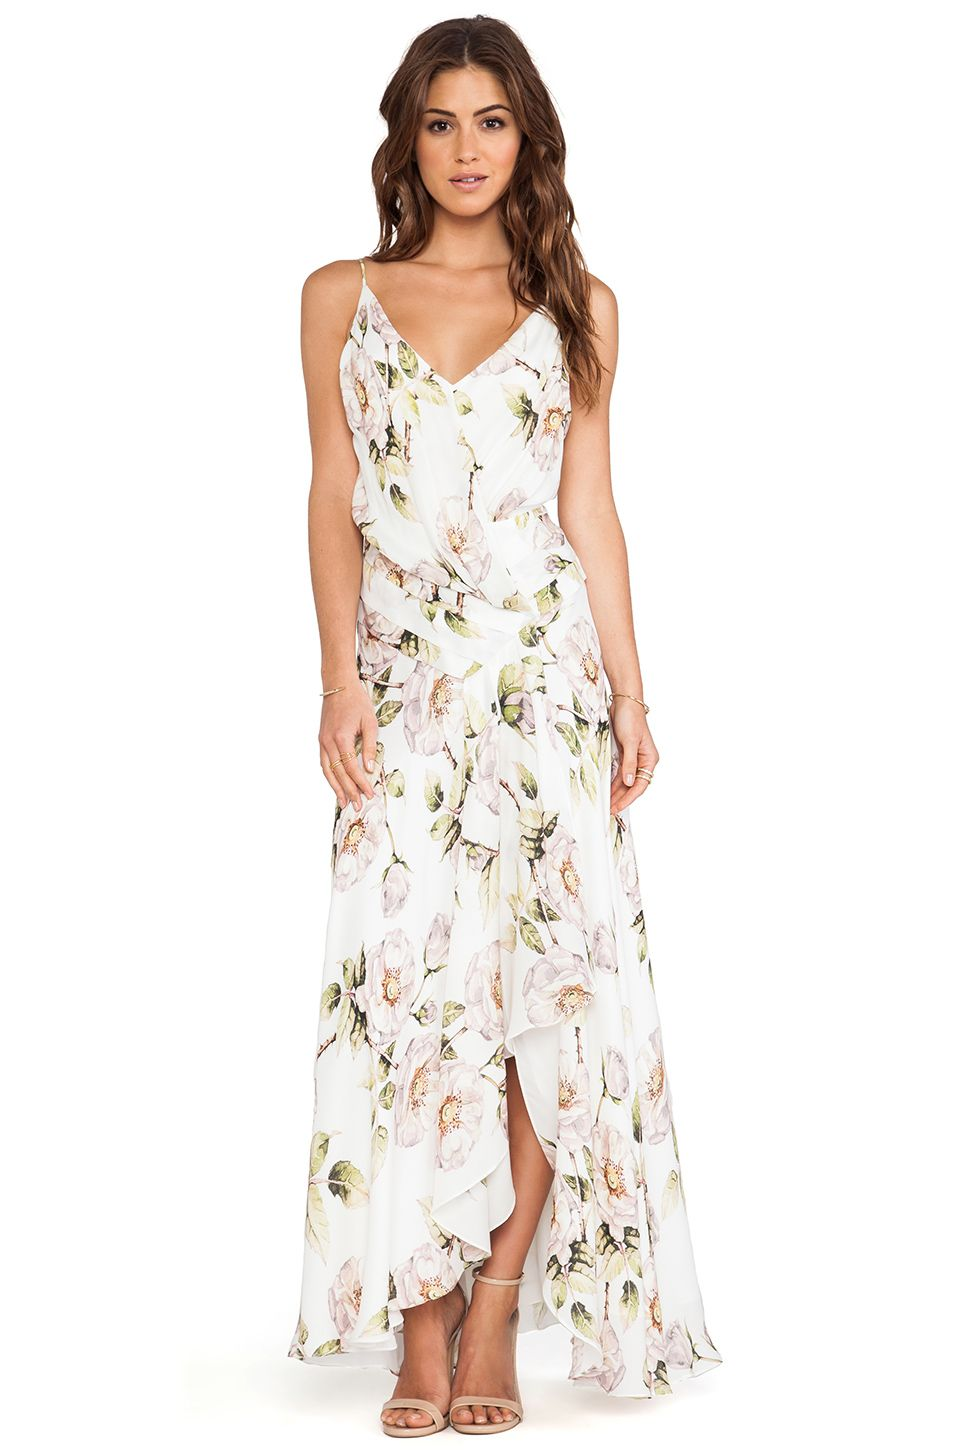 Floral maxi dress wedding  Haute Hippie Falling Petal Gown in Swan Multi  REVOLVE  Clothes